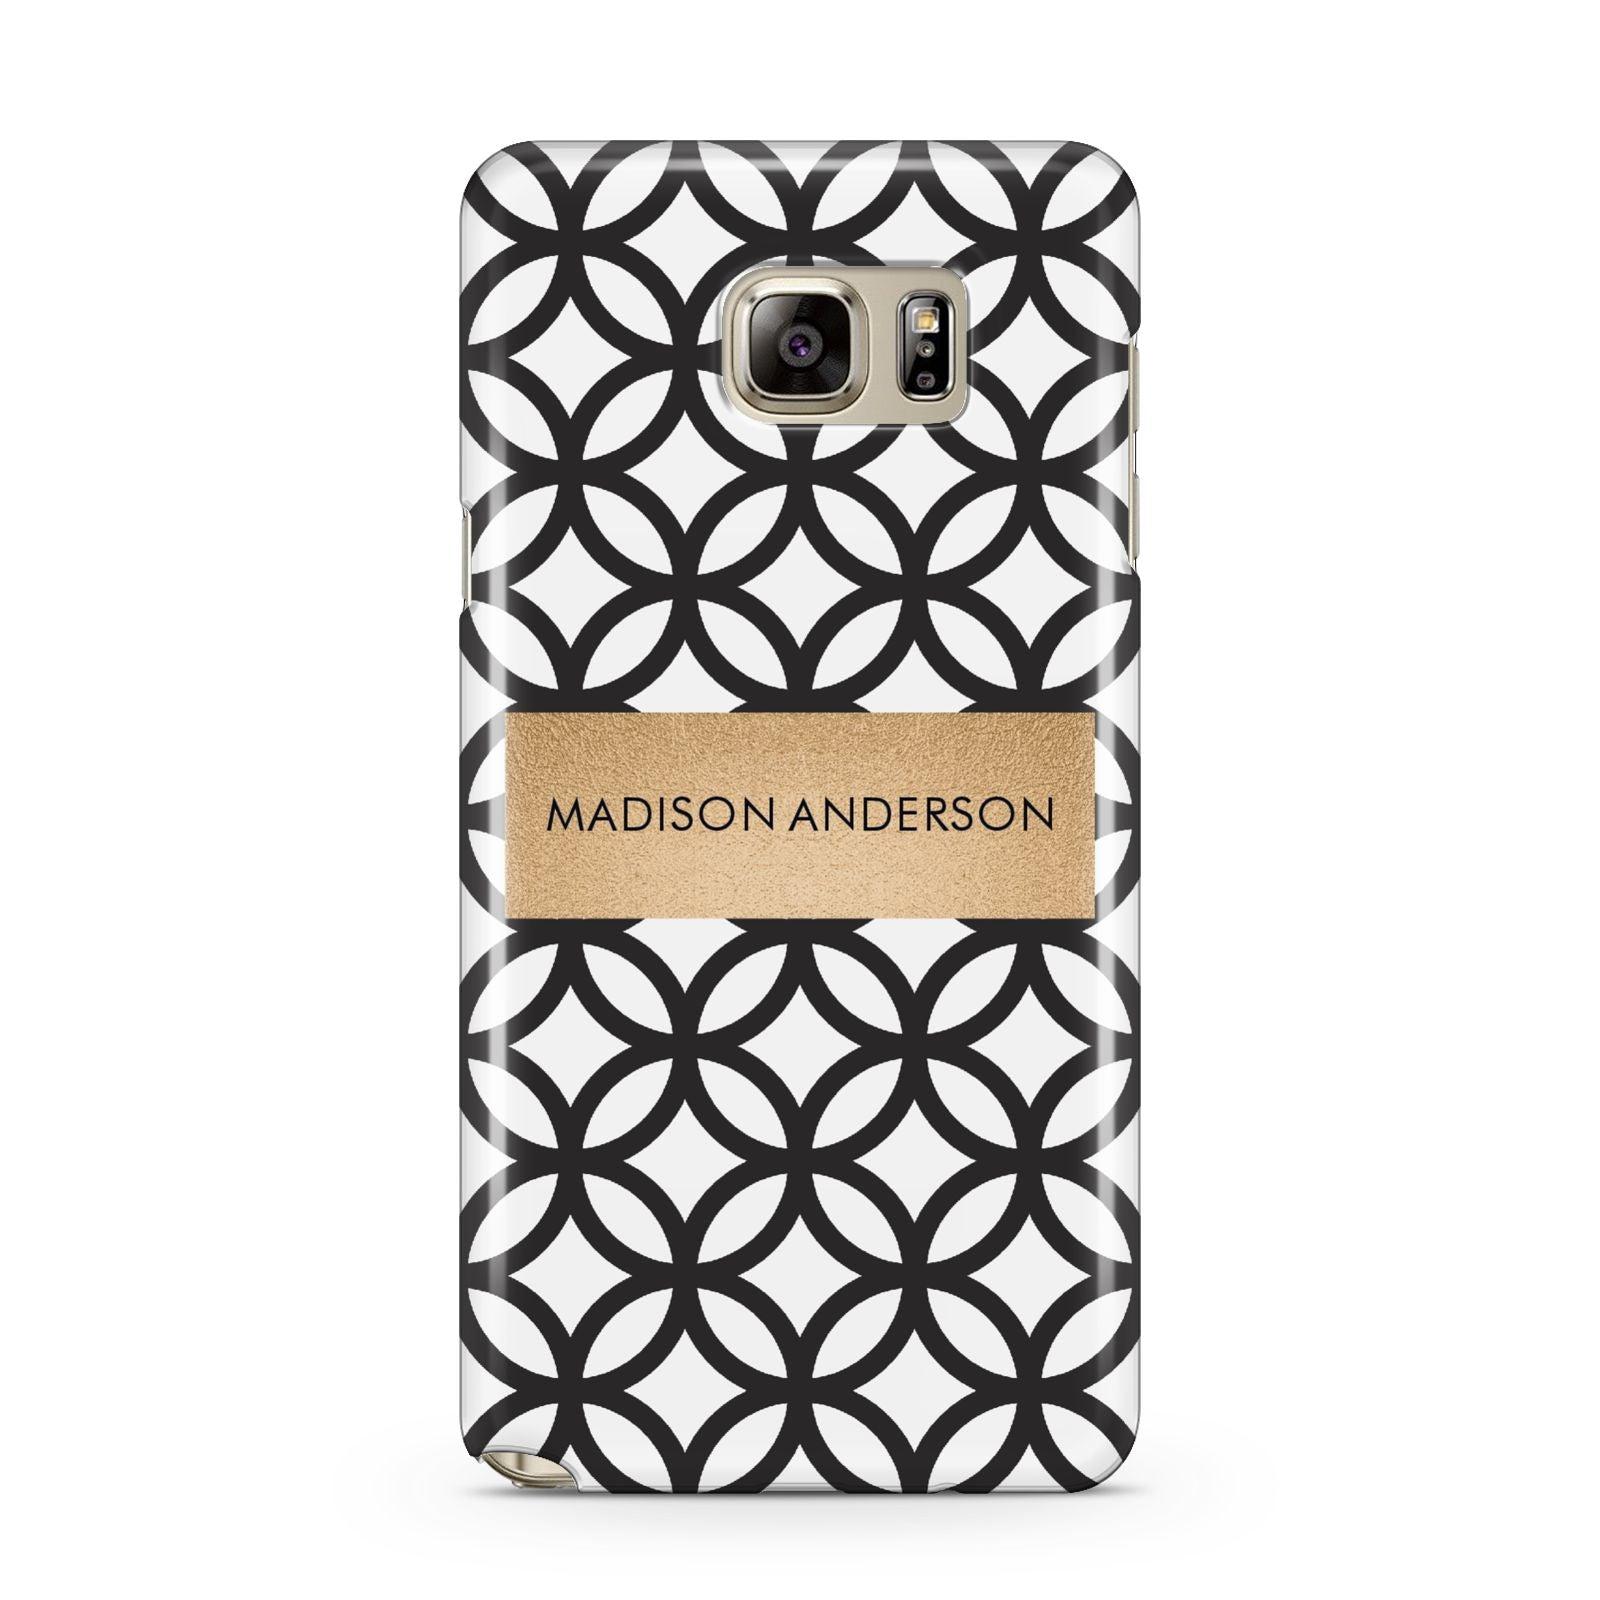 Personalised Geometric Name Or Initials Custom Samsung Galaxy Note 5 Case